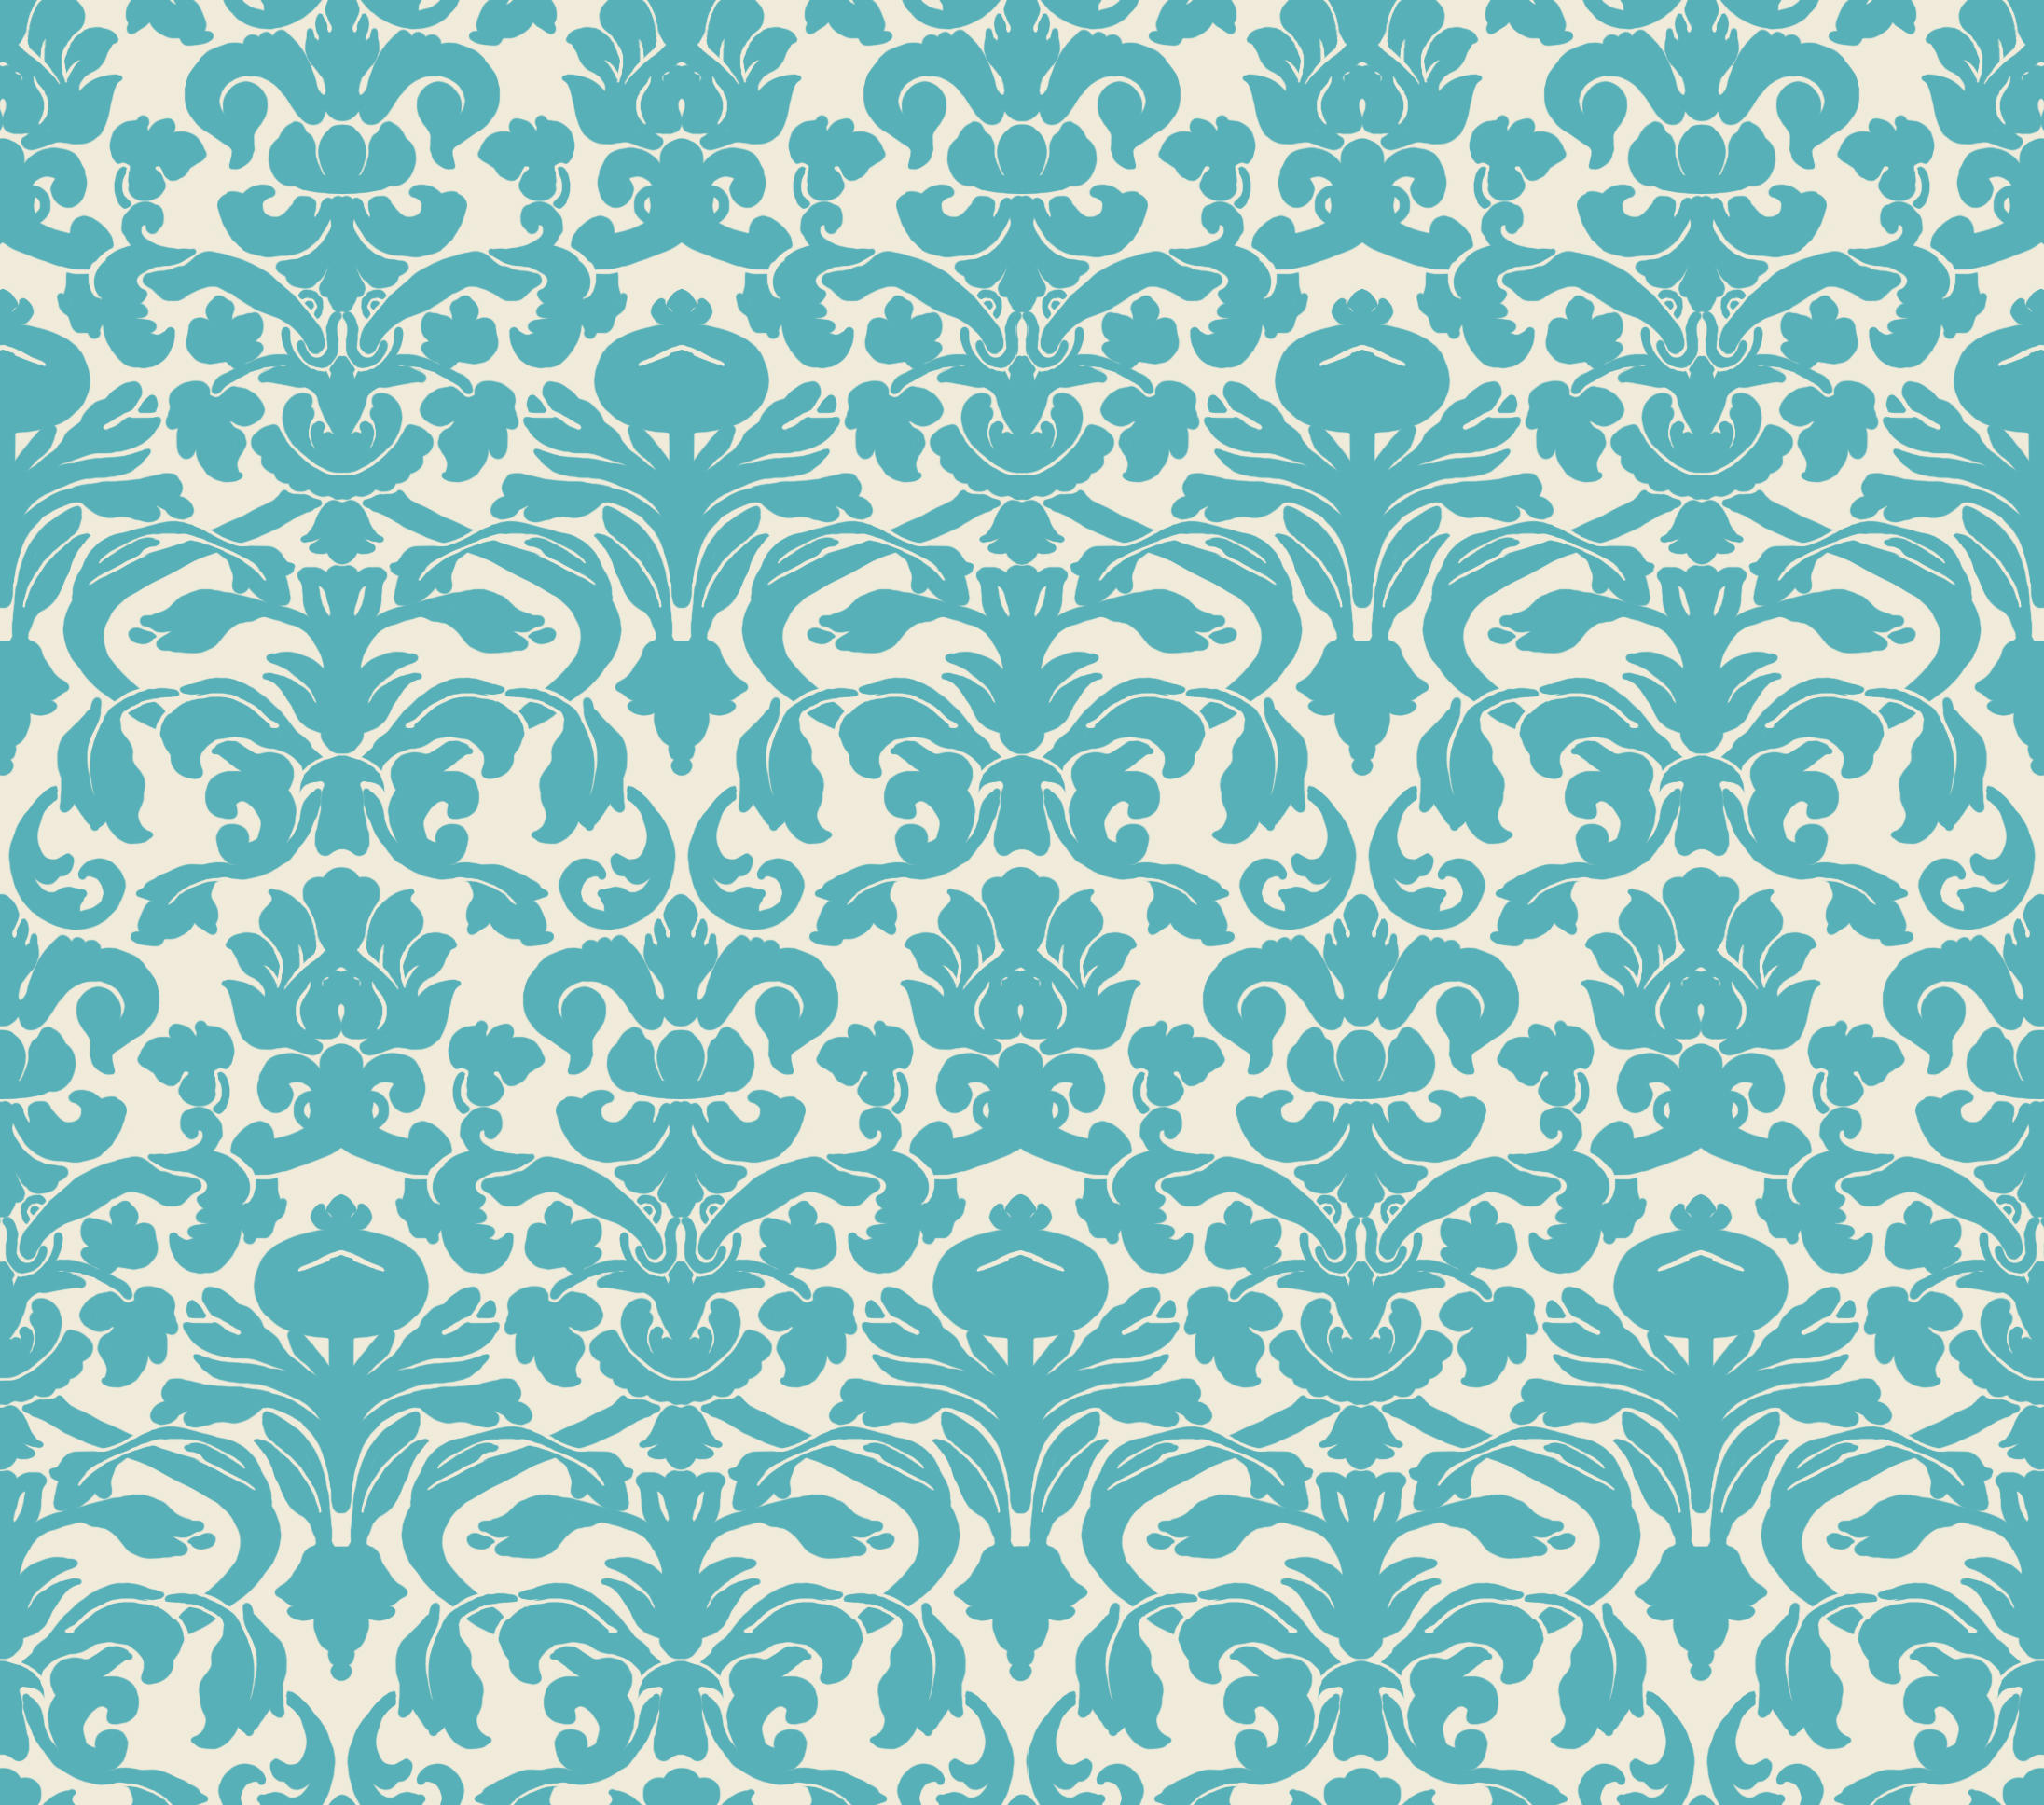 Damask wallpaper by insurrectionx on deviantart for Teal wallpaper